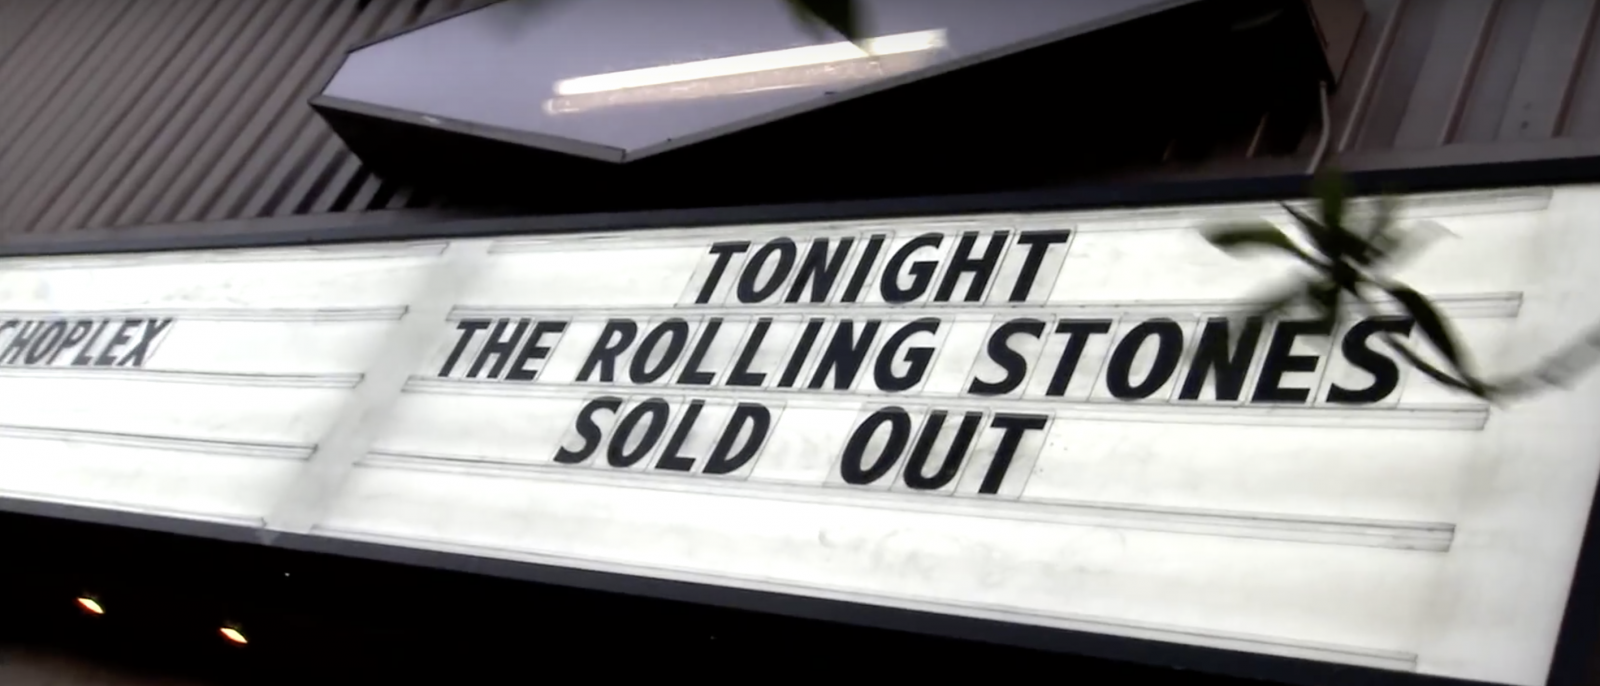 The Rolling Stones Echoplex